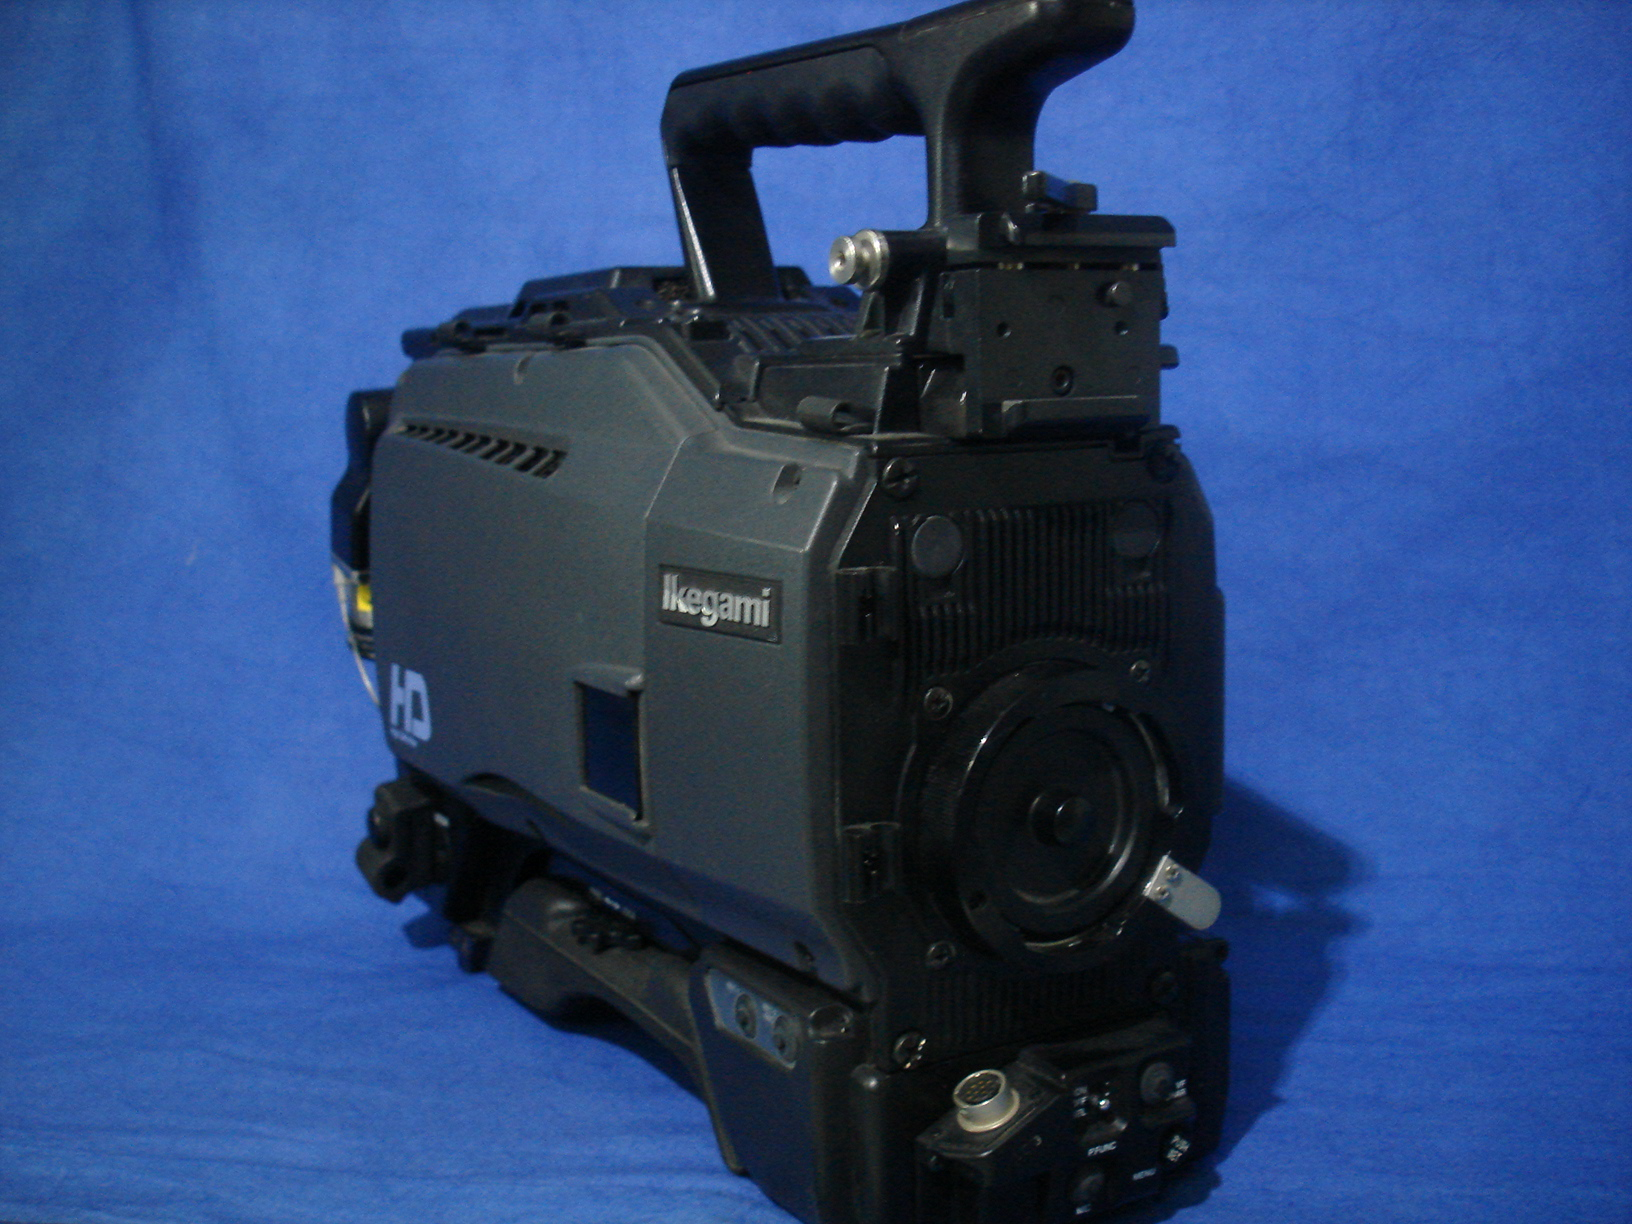 Ikegami studio HD camera - Image #1